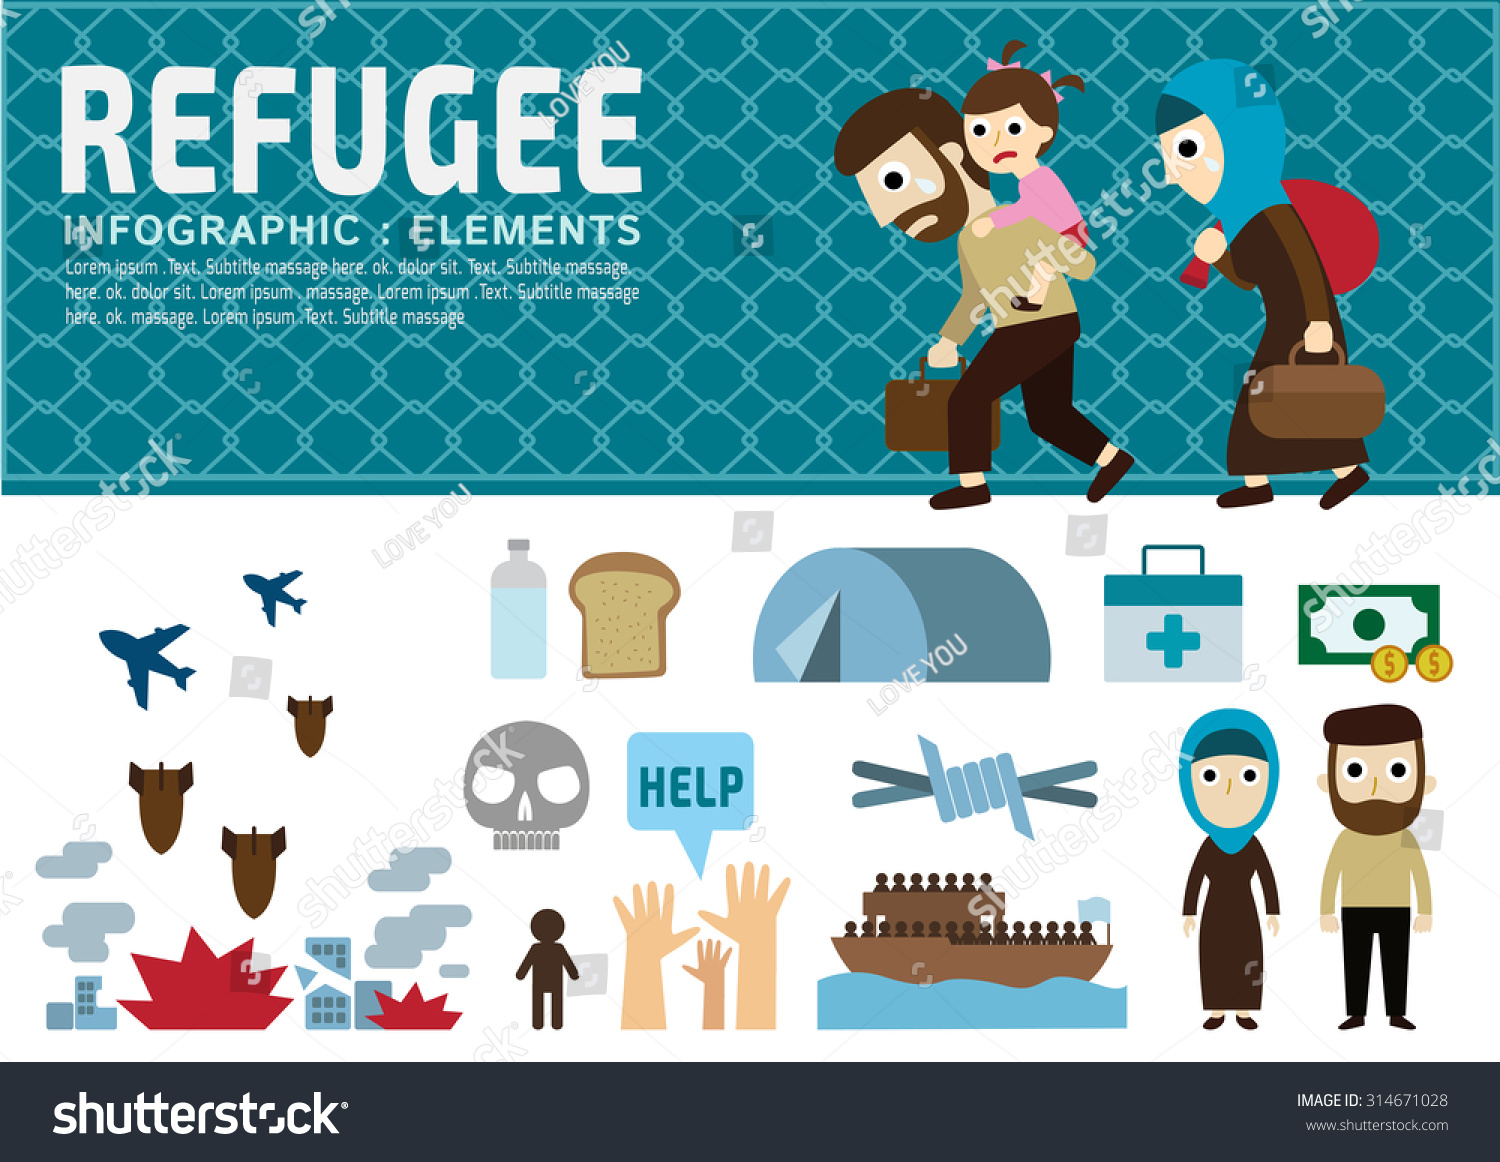 Infographic refugee vetting